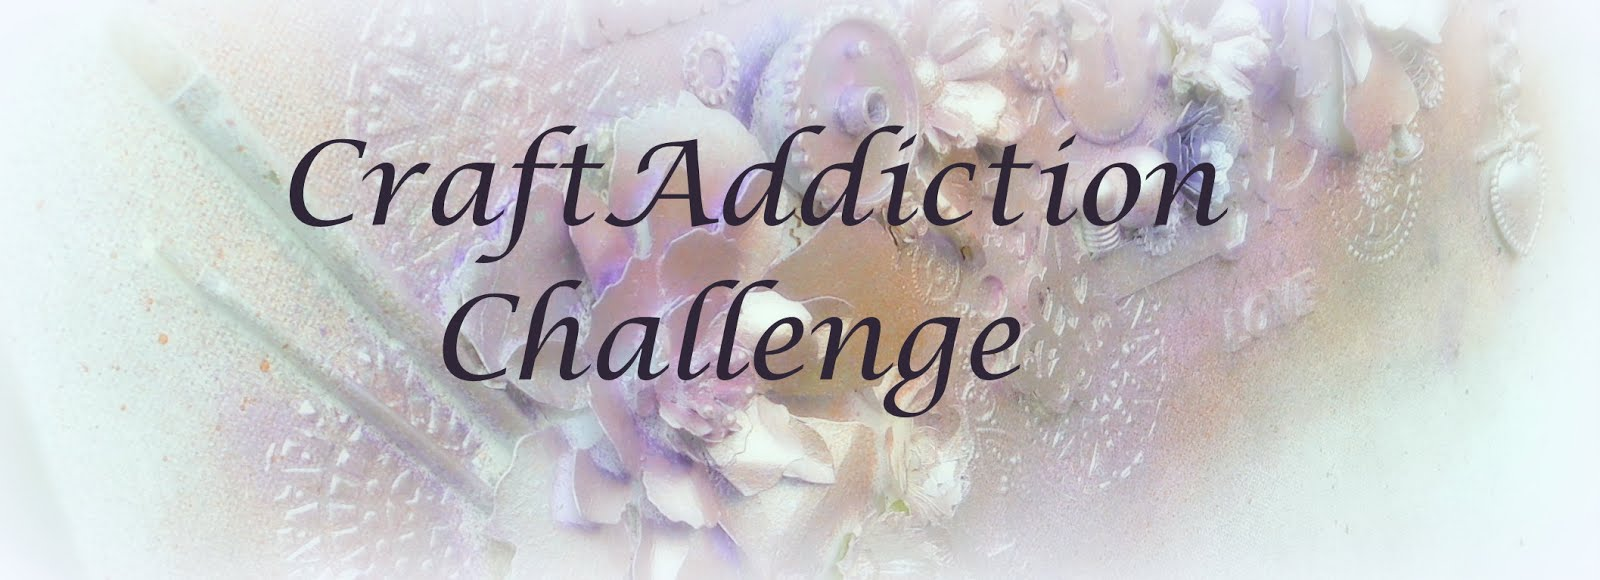 Craft Addiction Challenge